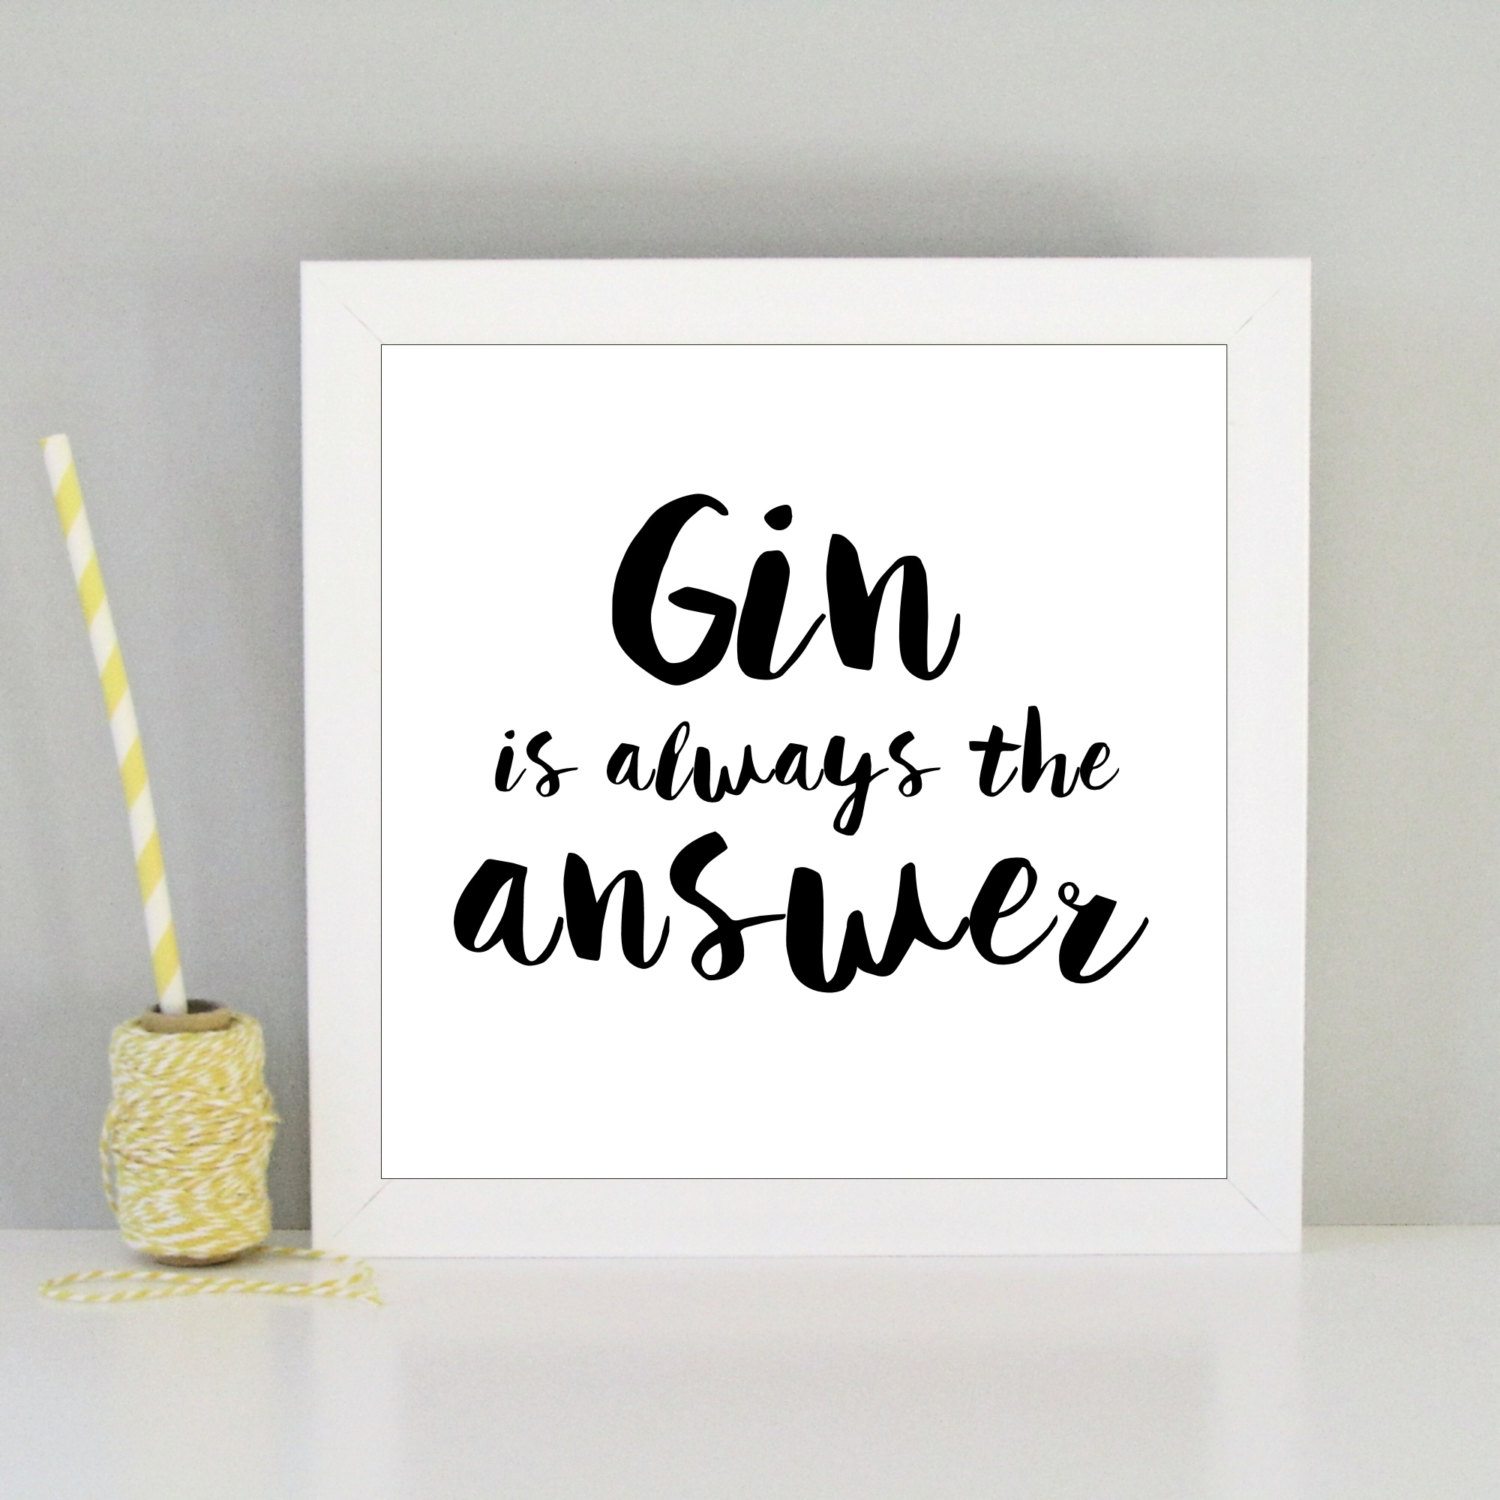 Framed funny gin art print always sparkle Gifts for kitchen lovers